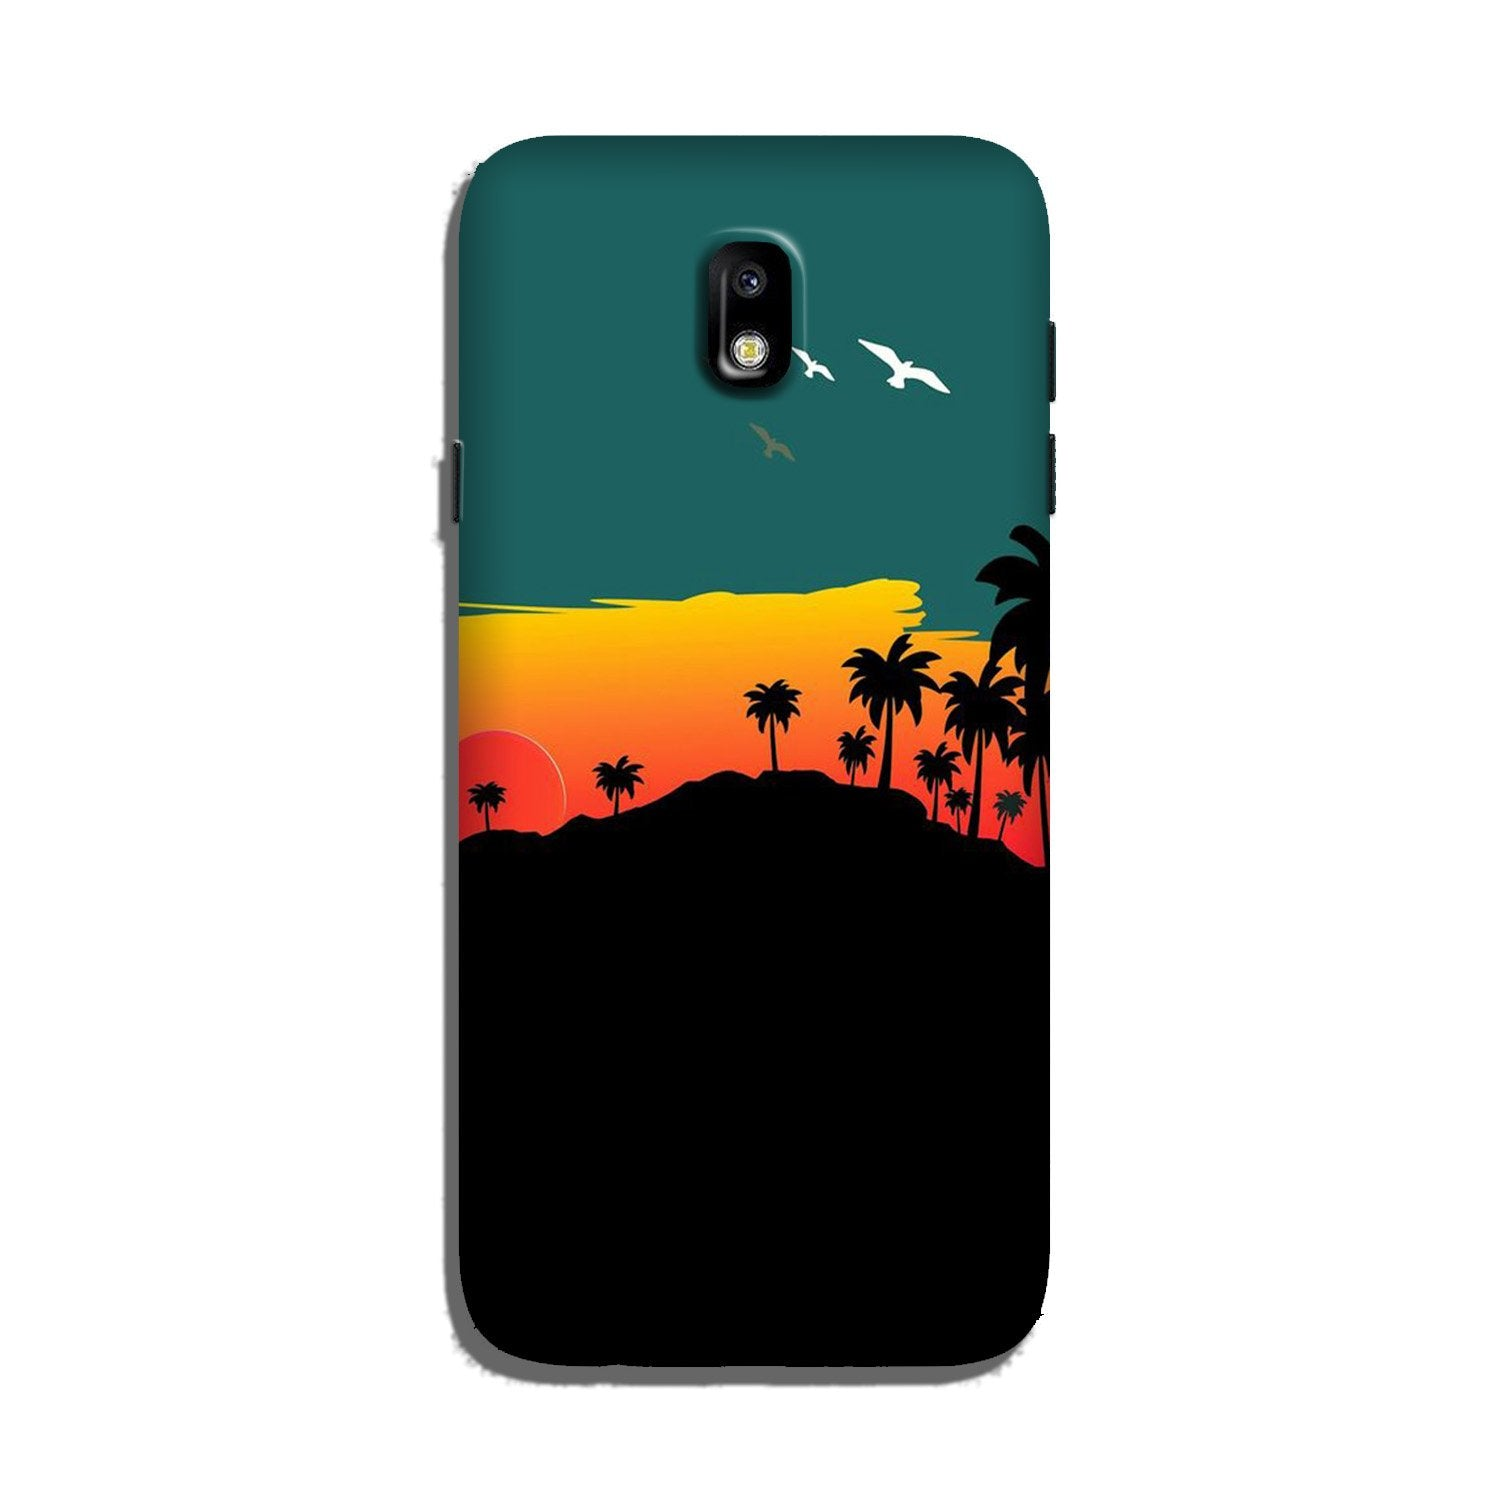 Sky Trees Case for Galaxy J7 Pro (Design - 191)